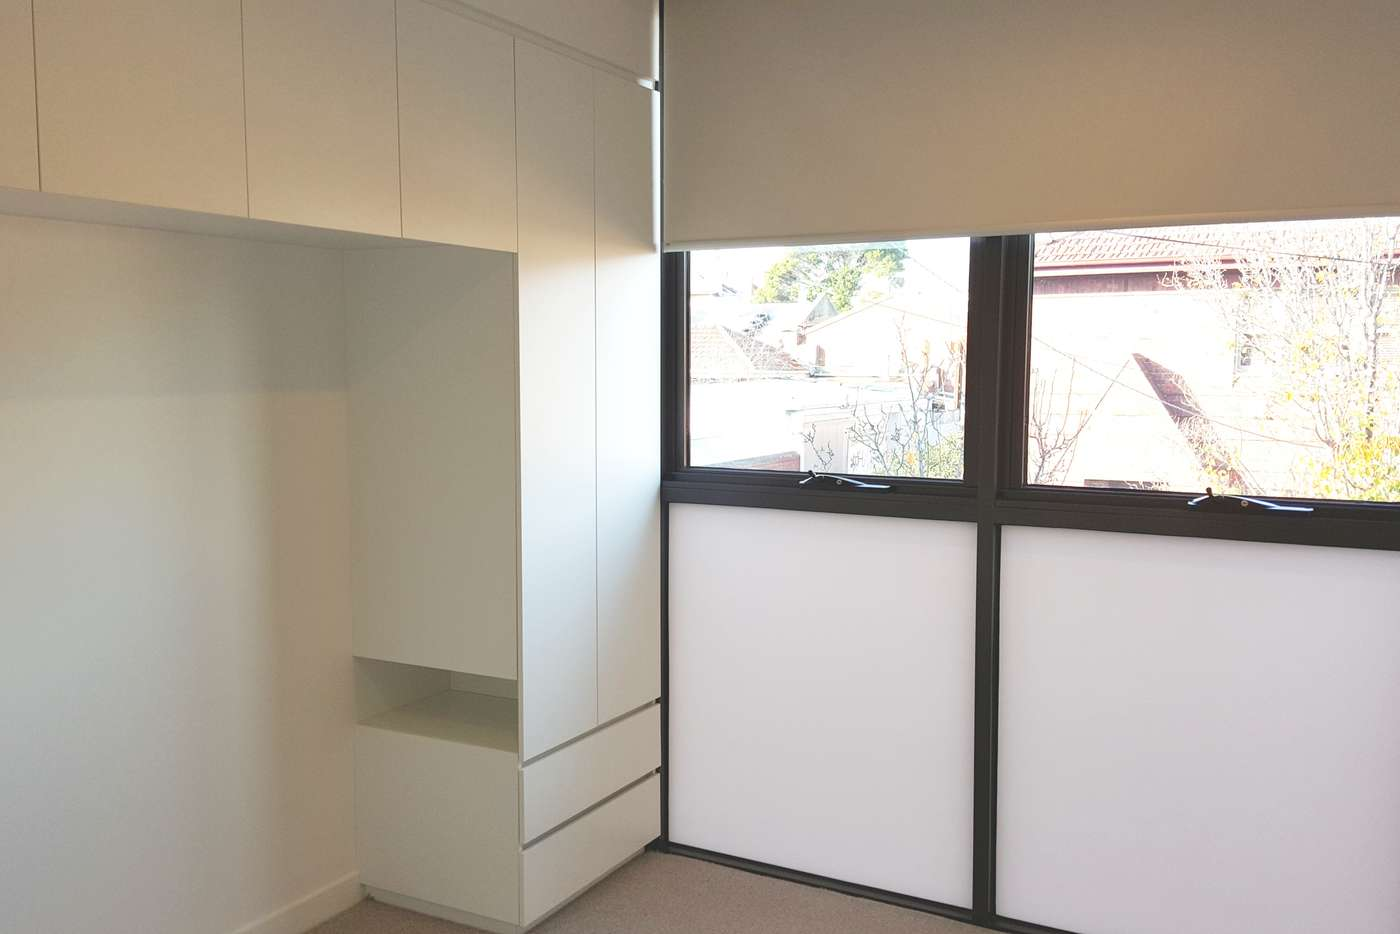 Seventh view of Homely apartment listing, 105/69 Newry Street, Prahran VIC 3181